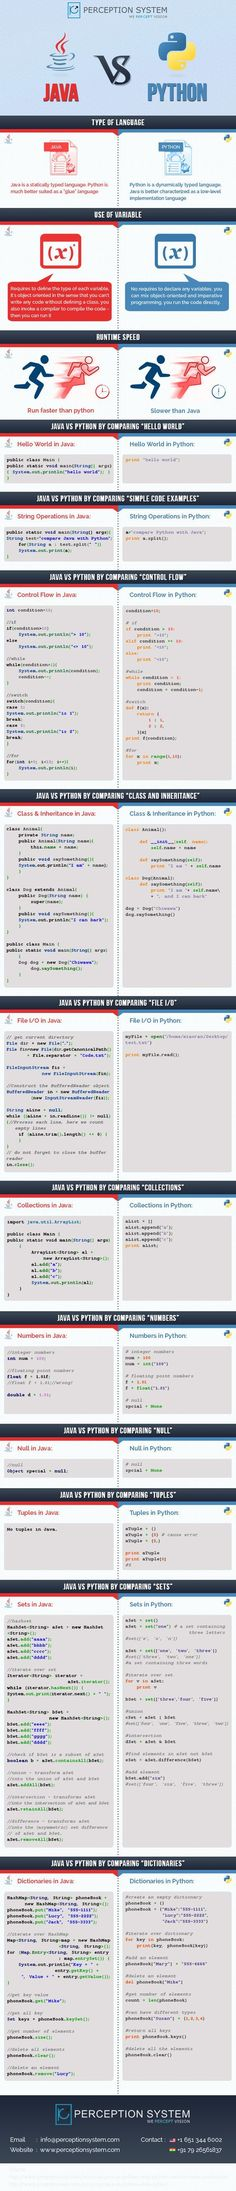 Python versus Java comparison for beginners to know the performance of programming language on speed, web application and game through this infographic.